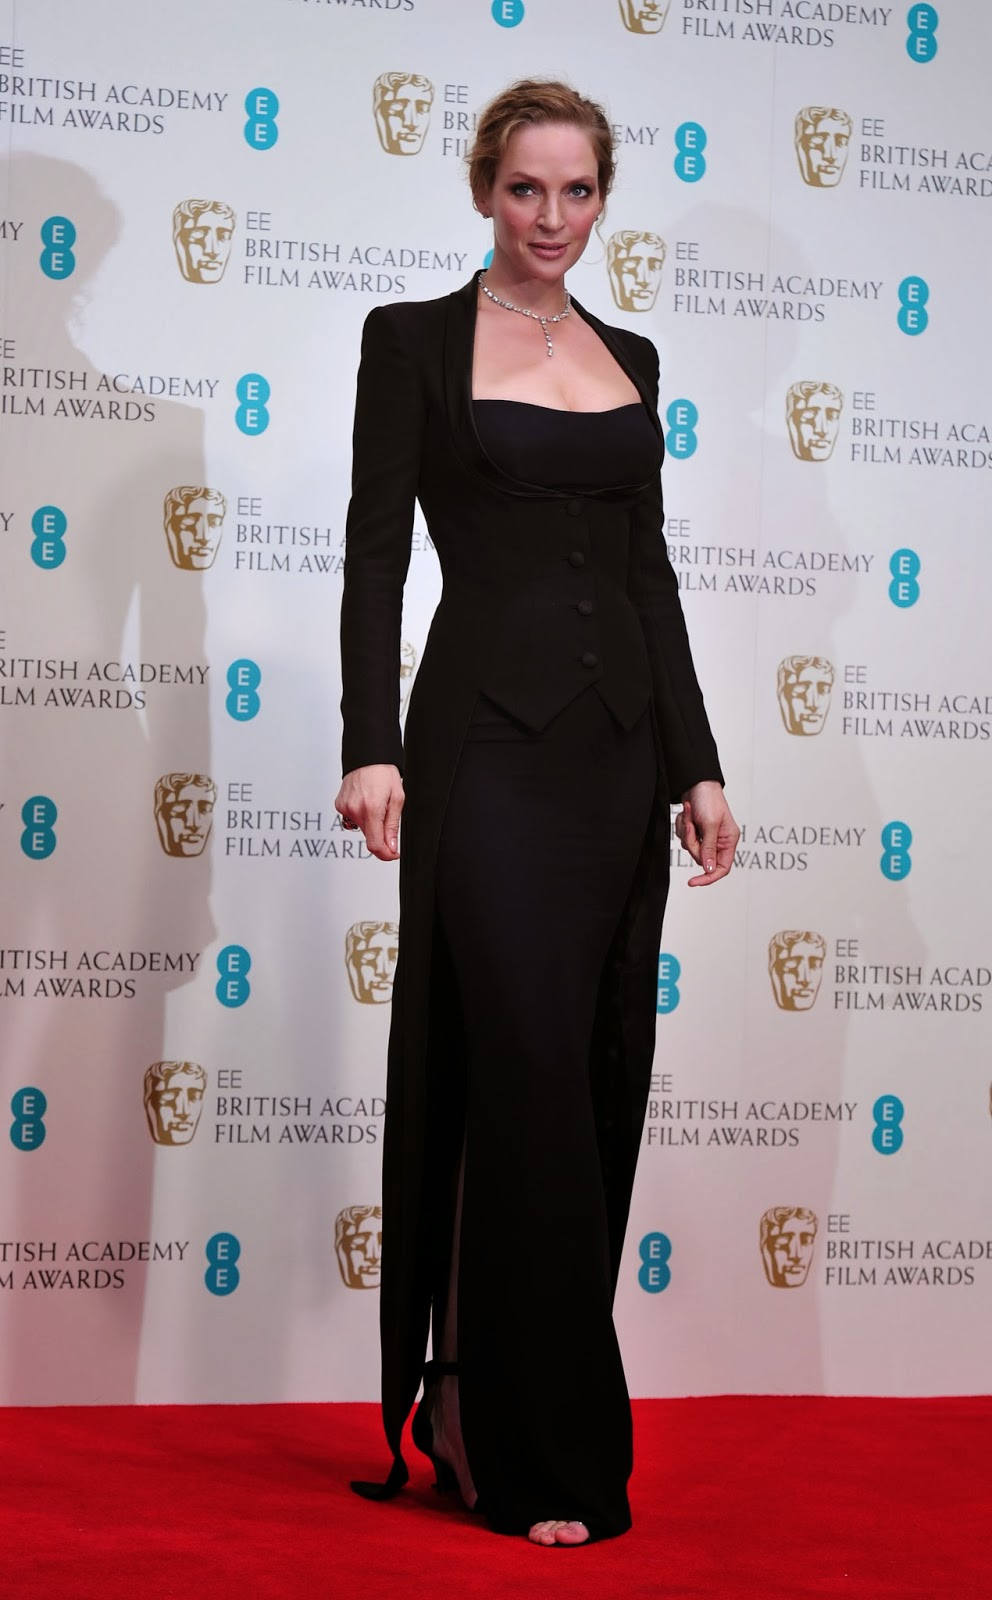 Actor, Actress, Angelina Jolie, Awards, BAFTA, BAFTA 2014, Brad Pitt, Britain, British Academy Film Awards, Cate Blanchett, Entertainment, Film, Hollywood, London, Movies, Royal Opera House, Show, Showbiz, Television,